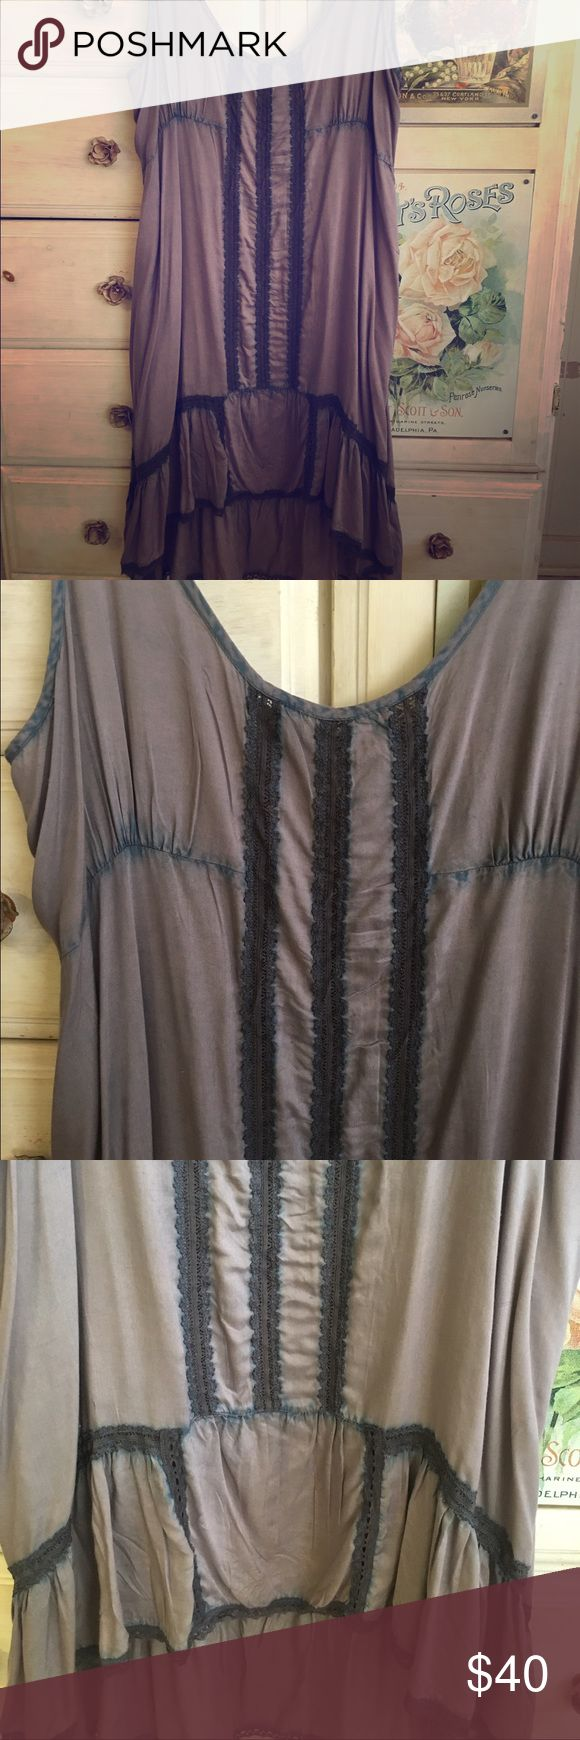 Free People dress Pretty lavender slip dress by Free People. Blue dye design throughout gives it a vintage feel. Can be worn as dress or tunic. Runs large. High low hem with ruffle detail. Size Large. Free People Dresses High Low